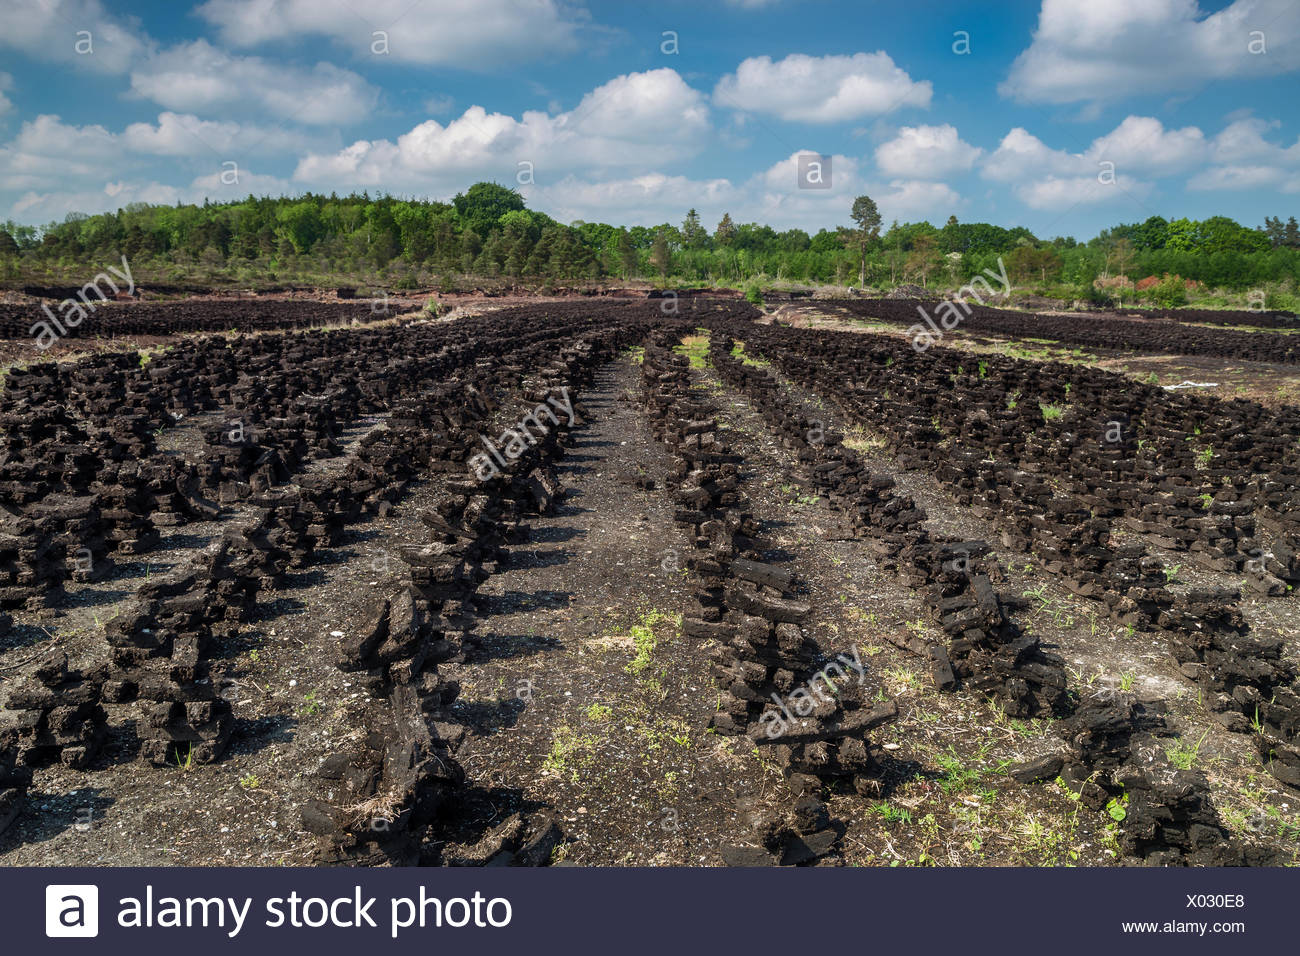 Ireland, County Offaly, Doon, Turf drying in summer sun - Stock Image